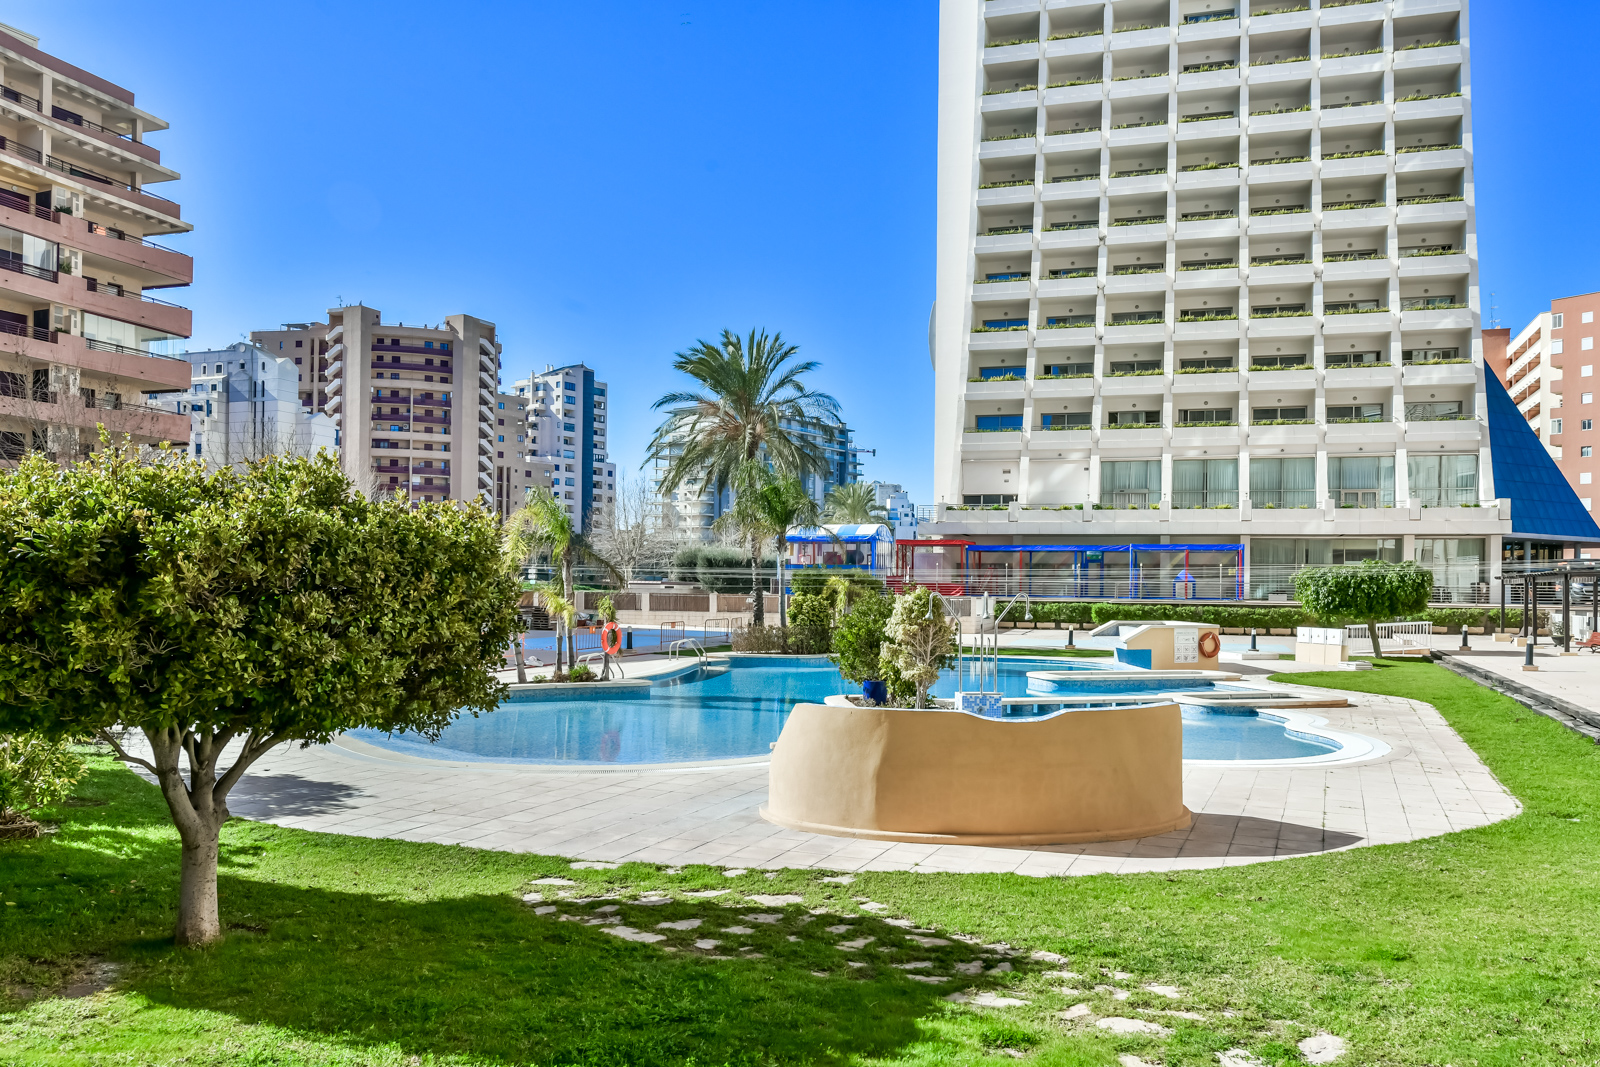 Apartamento Apolo XVI 2 4 19, Comfortable apartment in Calpe, on the Costa Blanca, Spain  with communal pool for 4 persons.....